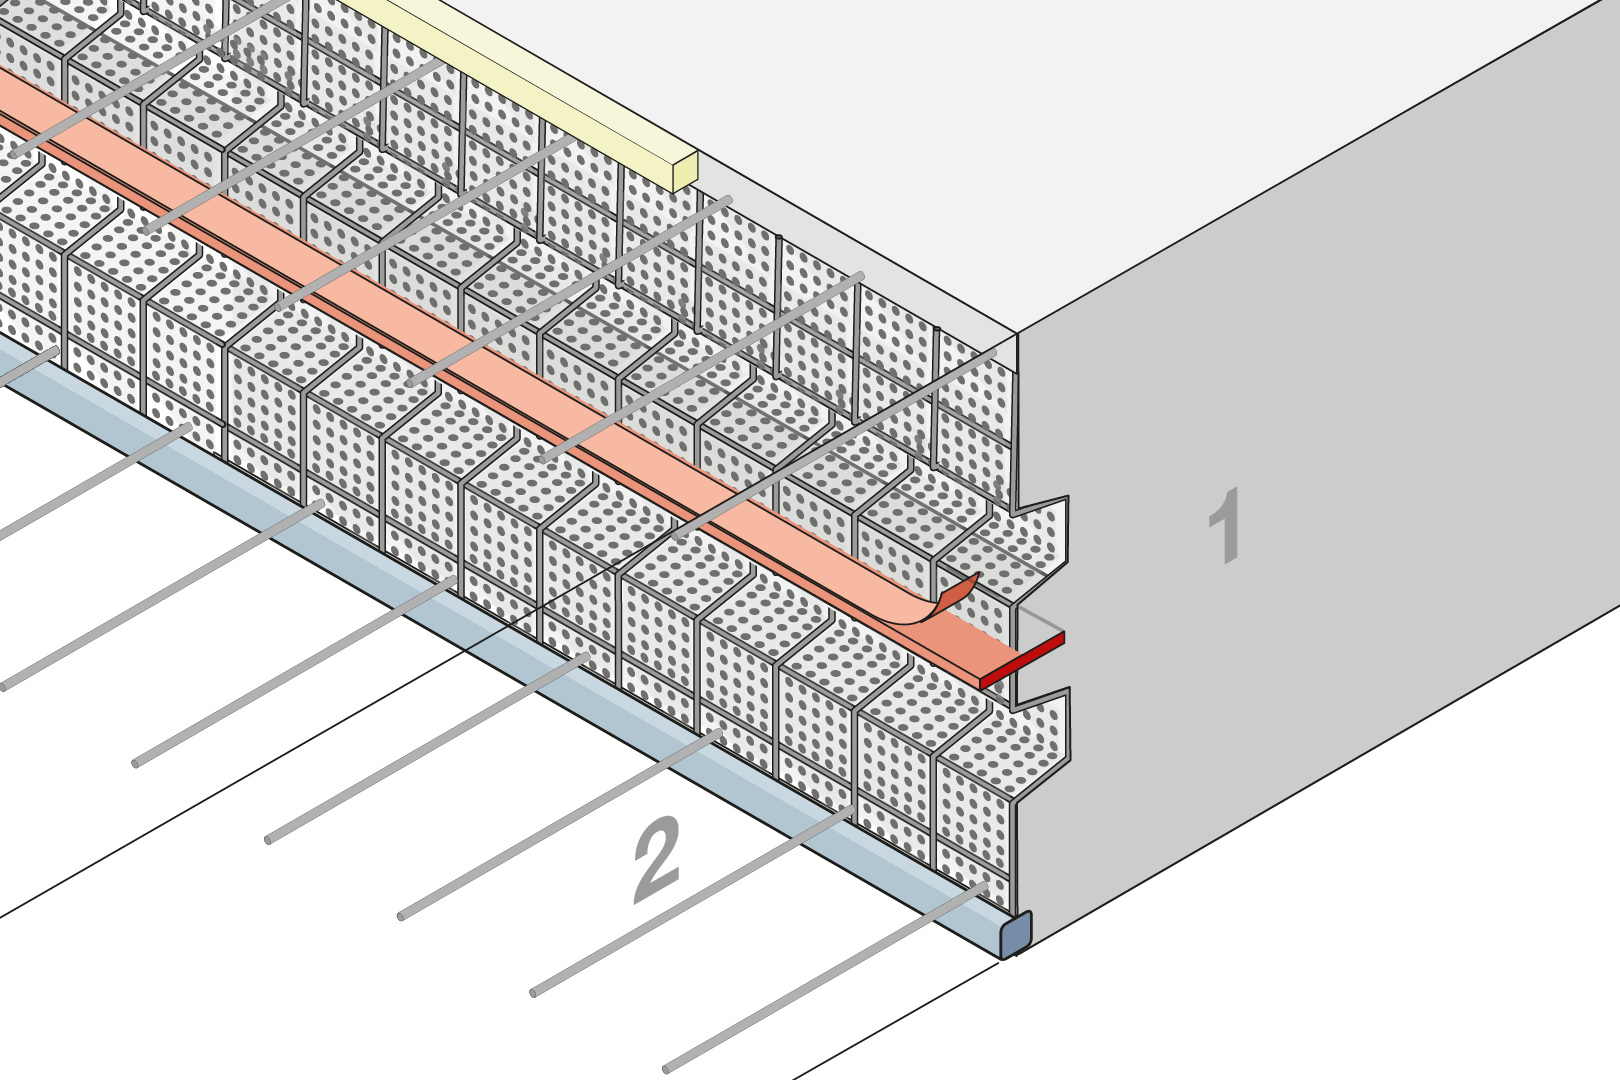 Construction Joint Formwork With Indentation And Coated Metal Waterstop - Slab